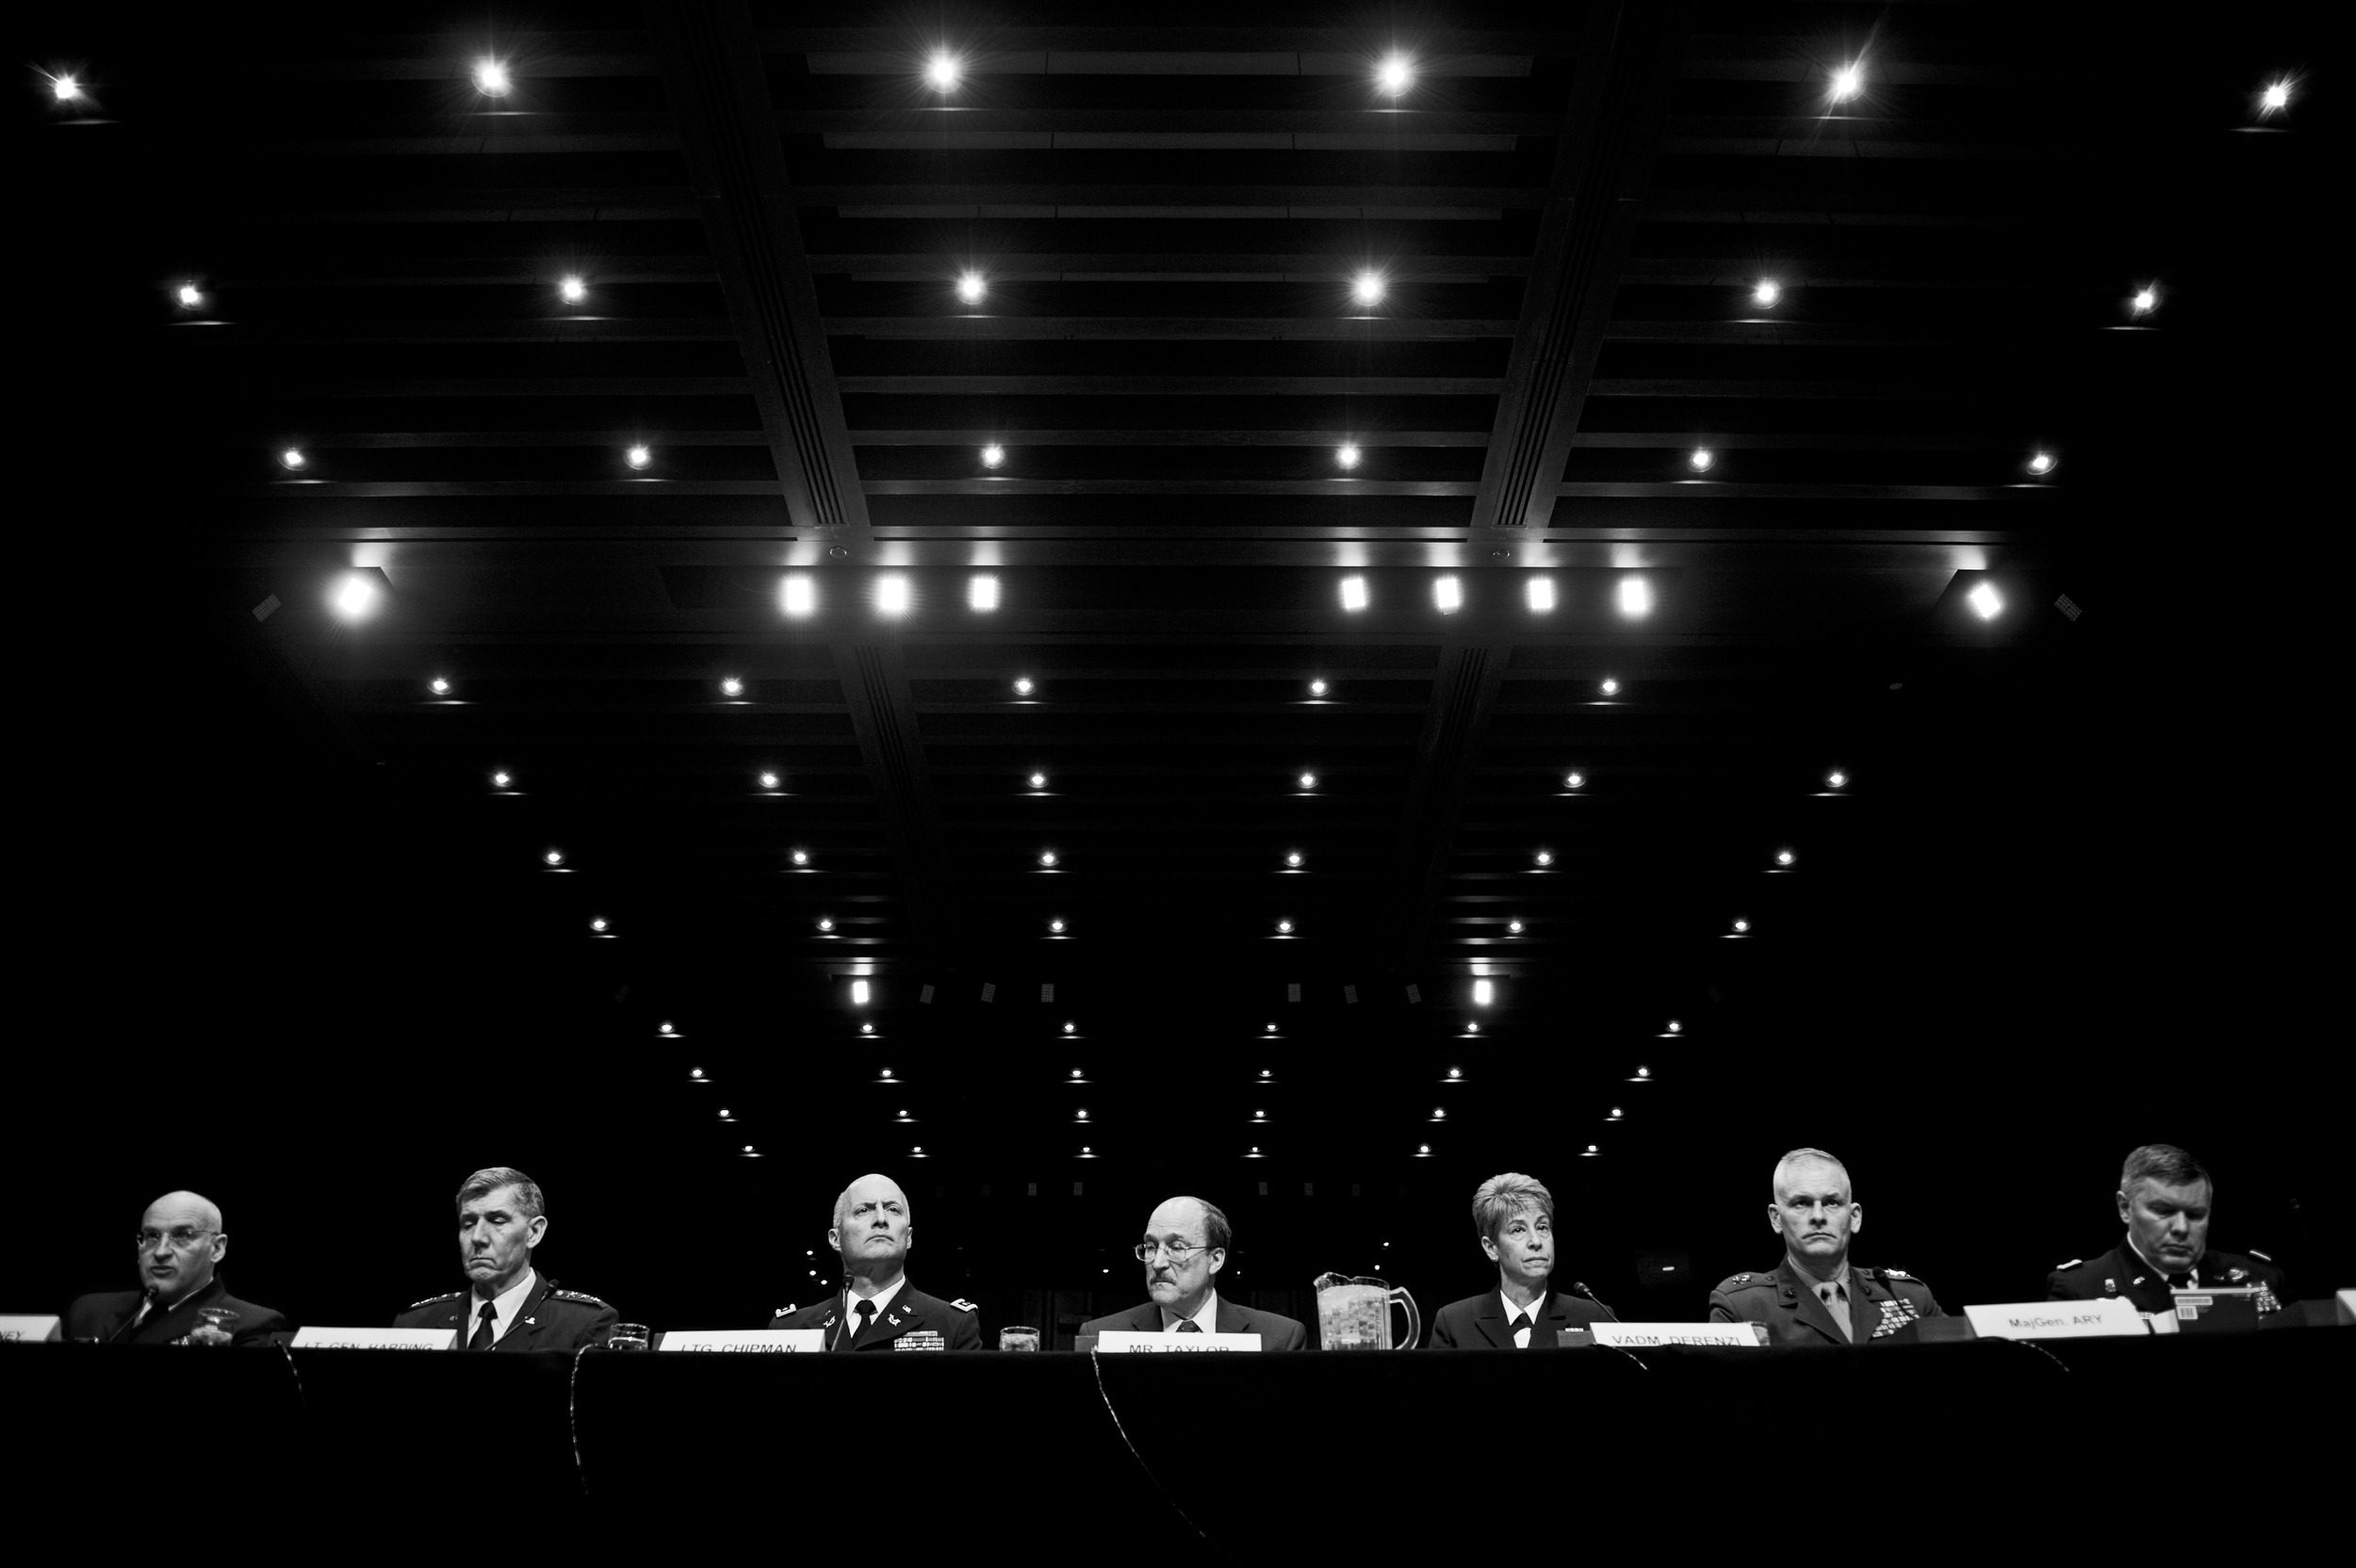 The War Within: Military lawyers from the US Air Force, Army, Navy, Marines and Coast Guard testify during a Senate Armed Services Committee hearing on Capitol Hill. The hearing was held to discuss sexual assaults in the US Armed Forces.  © Mary F. Calvert/ ZUMAPRESS.com